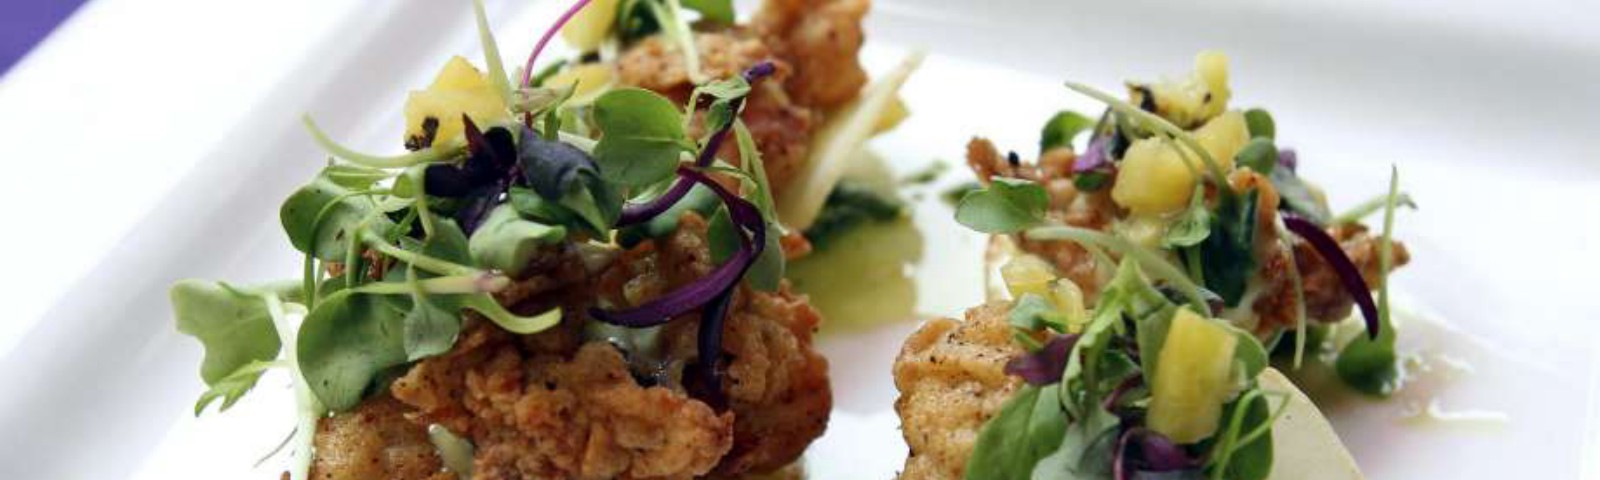 http://www.mysanantonio.com/food/restaurants/article/Your-guide-to-Mother-s-Day-dining-in-San-Antonio-11119085.php